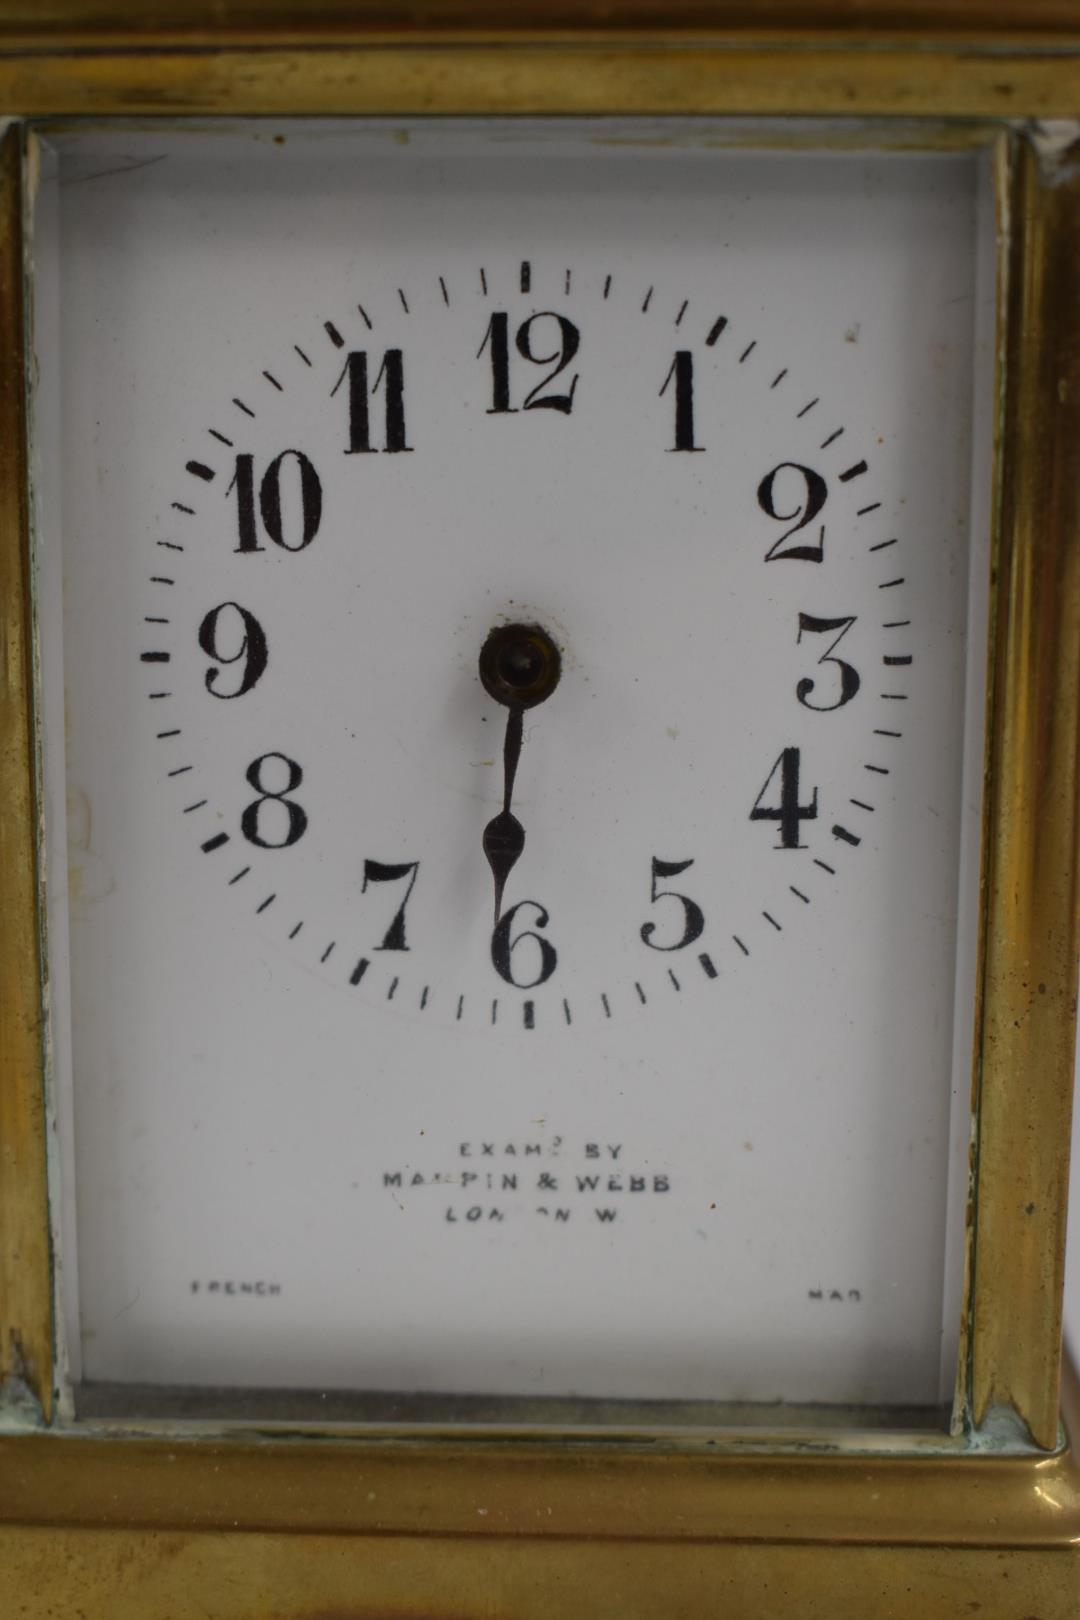 A c1900 brass French carriage clock, the enamel Arabic dial marked 'Exam'd by Mappin & Webb London', - Image 2 of 5